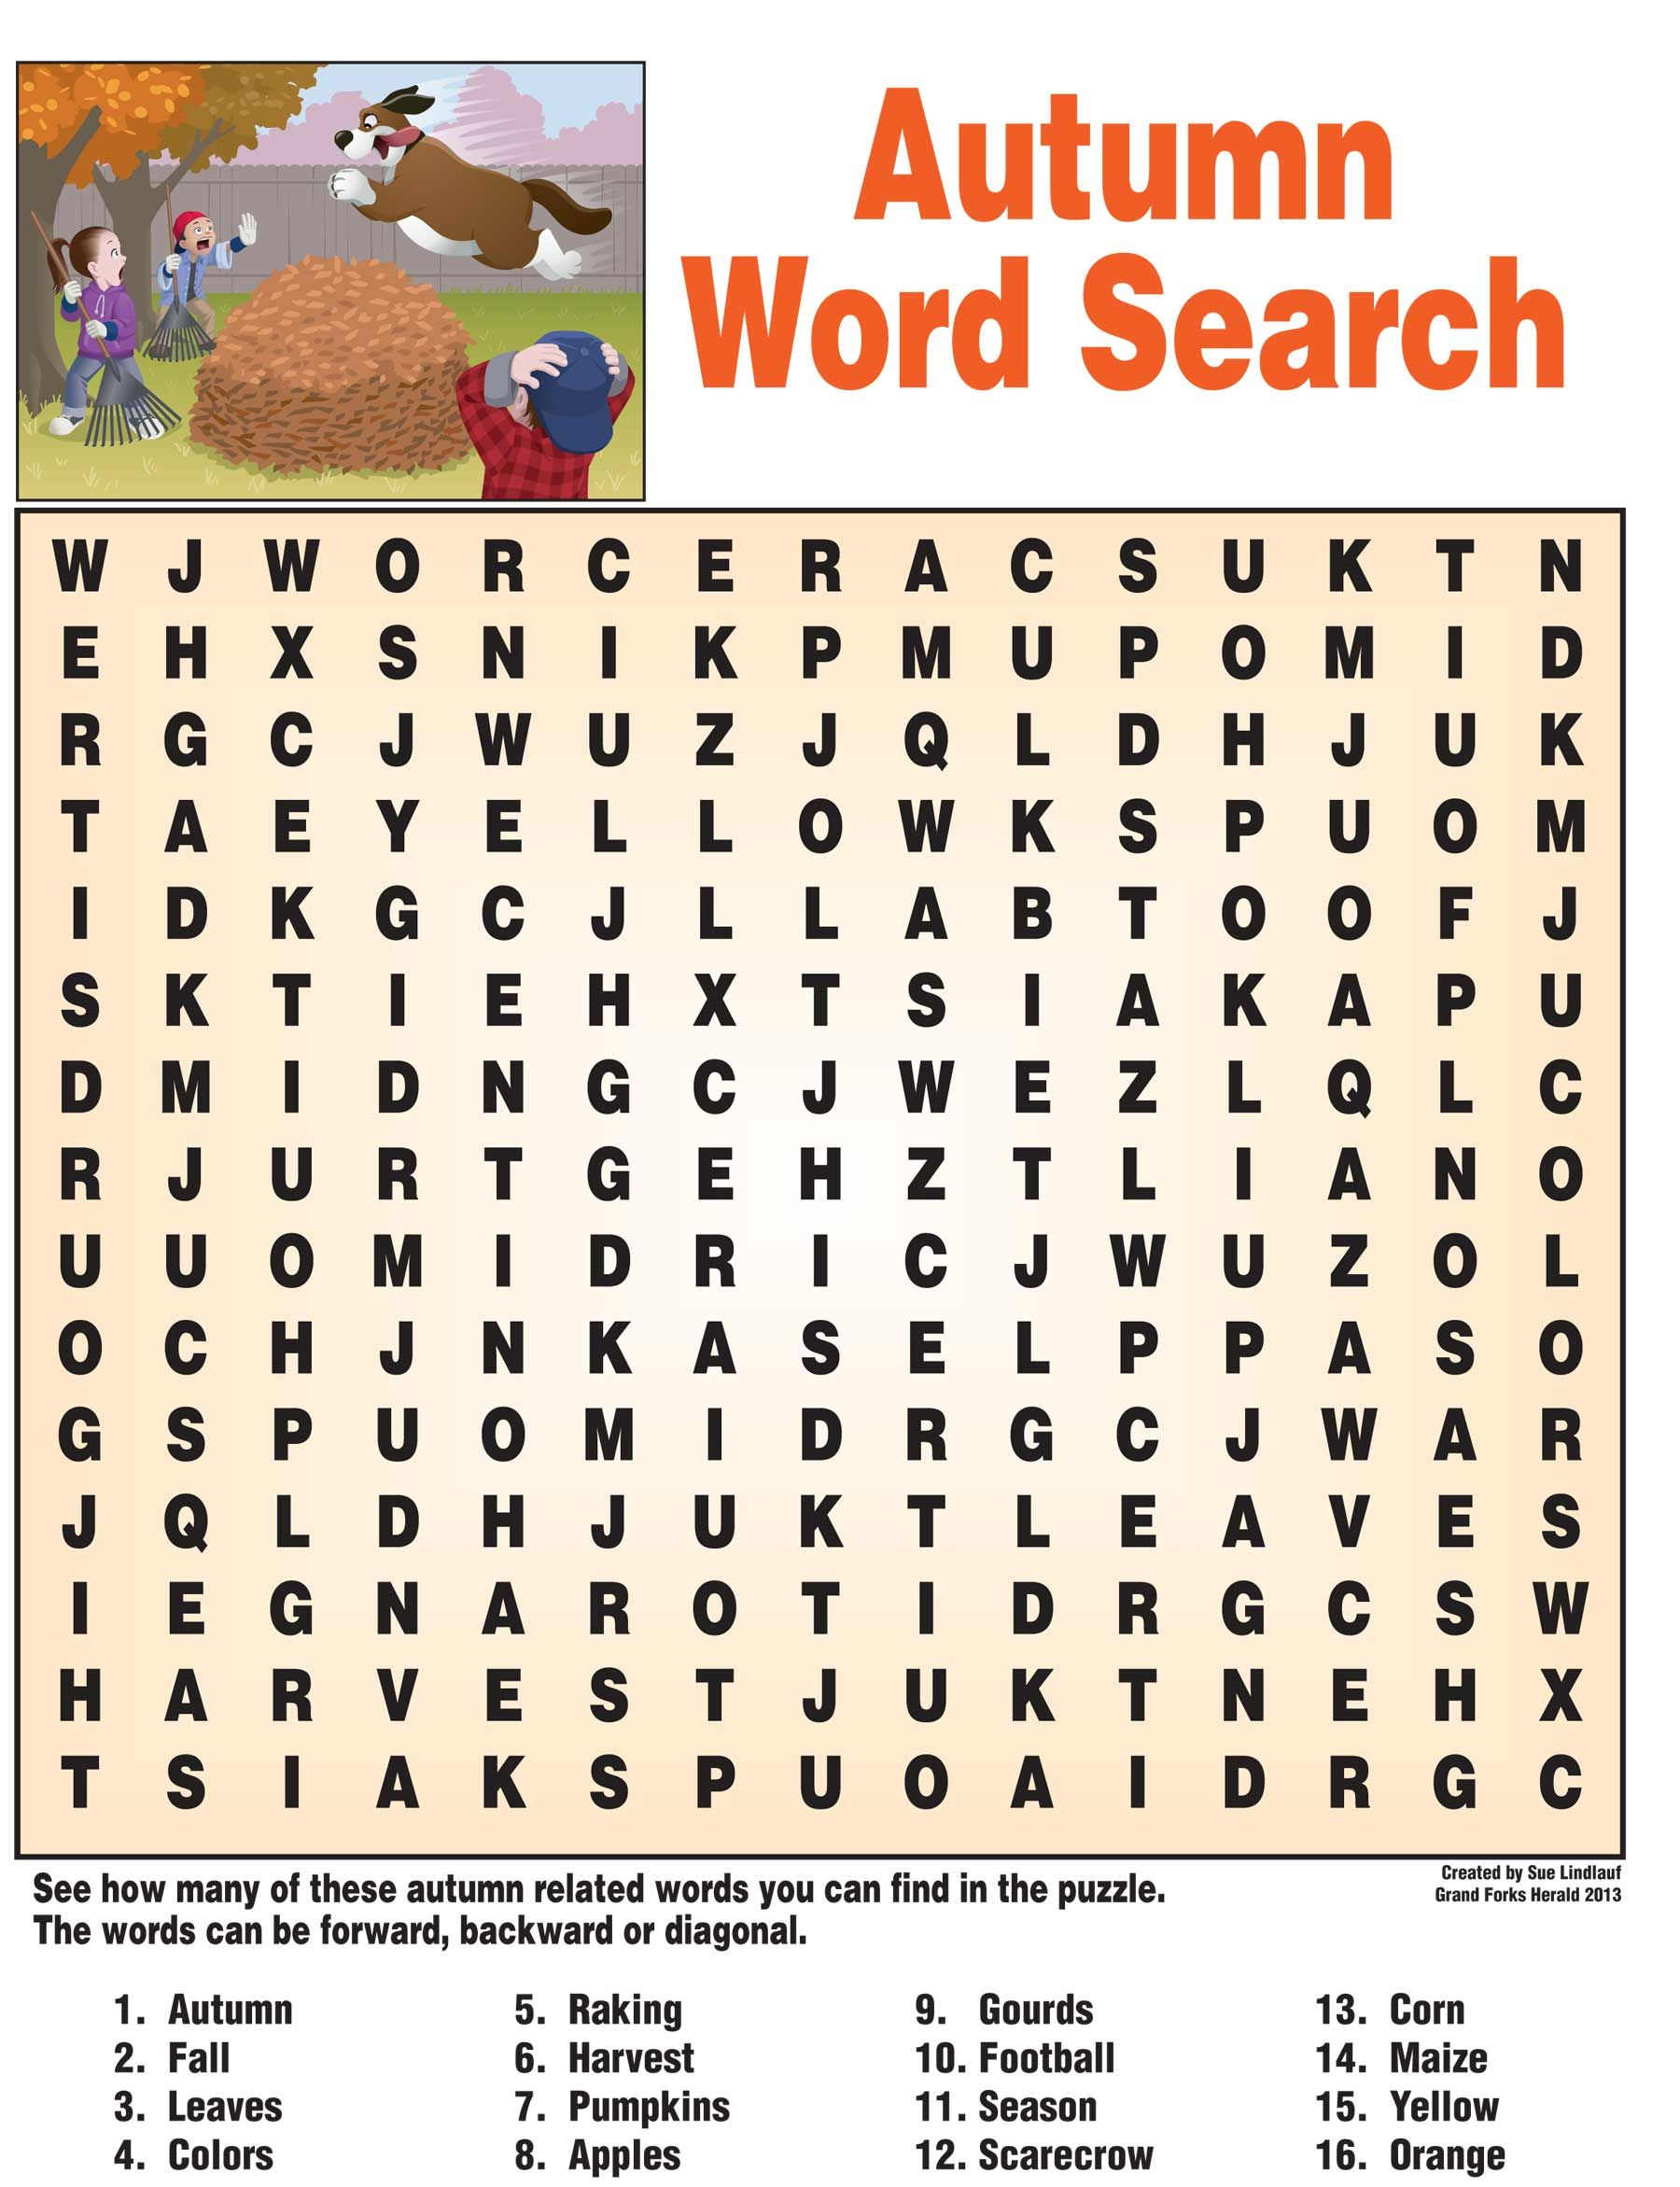 Autumn Word Search With Images